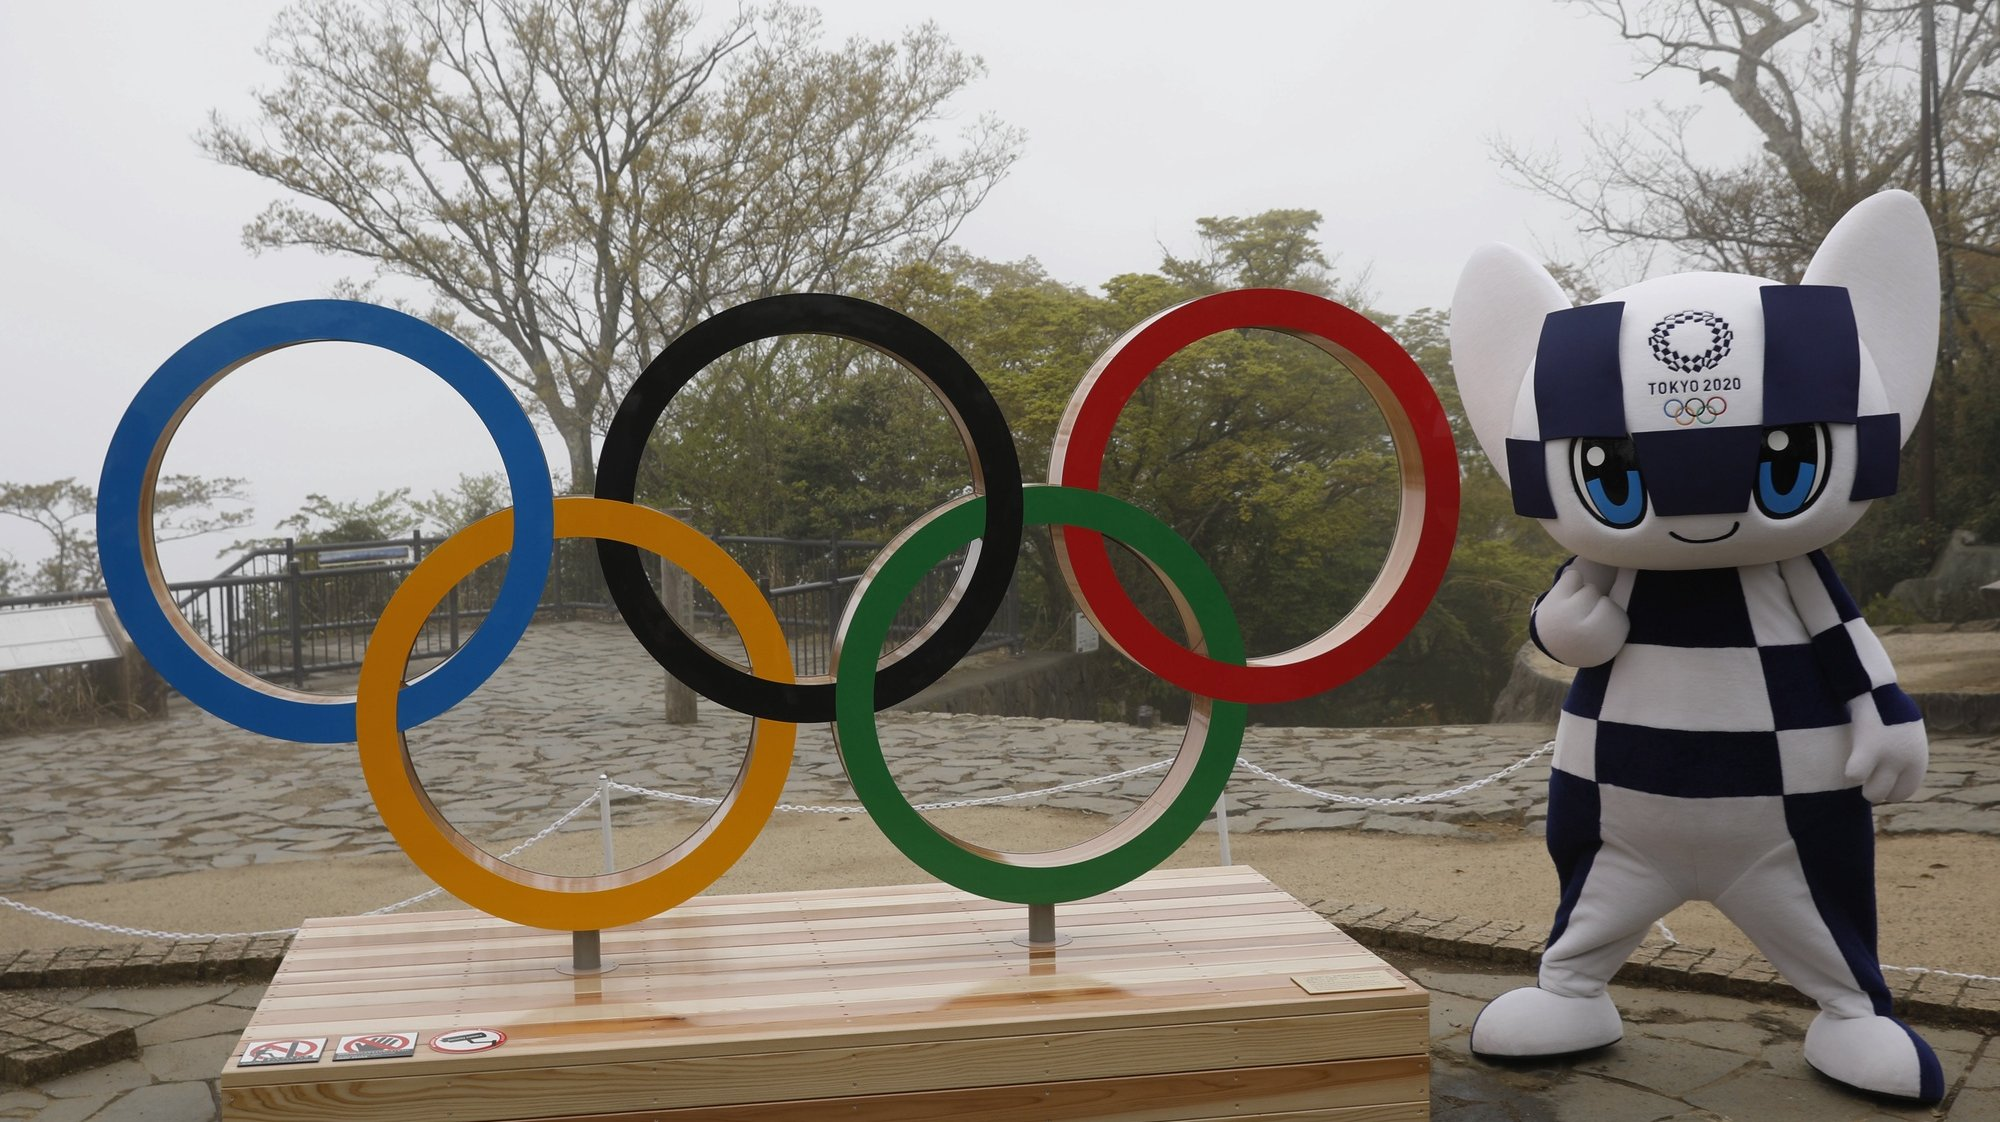 epa09134158 Tokyo 2020 Olympic Games mascot Miraitowa poses with a display of Olympic Symbol after unveiling ceremony of the symbol on Mt. Takao in Hachioji, Japan, 14 April 14, 2021, to mark 100 days before the start of 2020 Tokyo Olympic Games.  EPA/KIM KYUNG-HOON / POOL